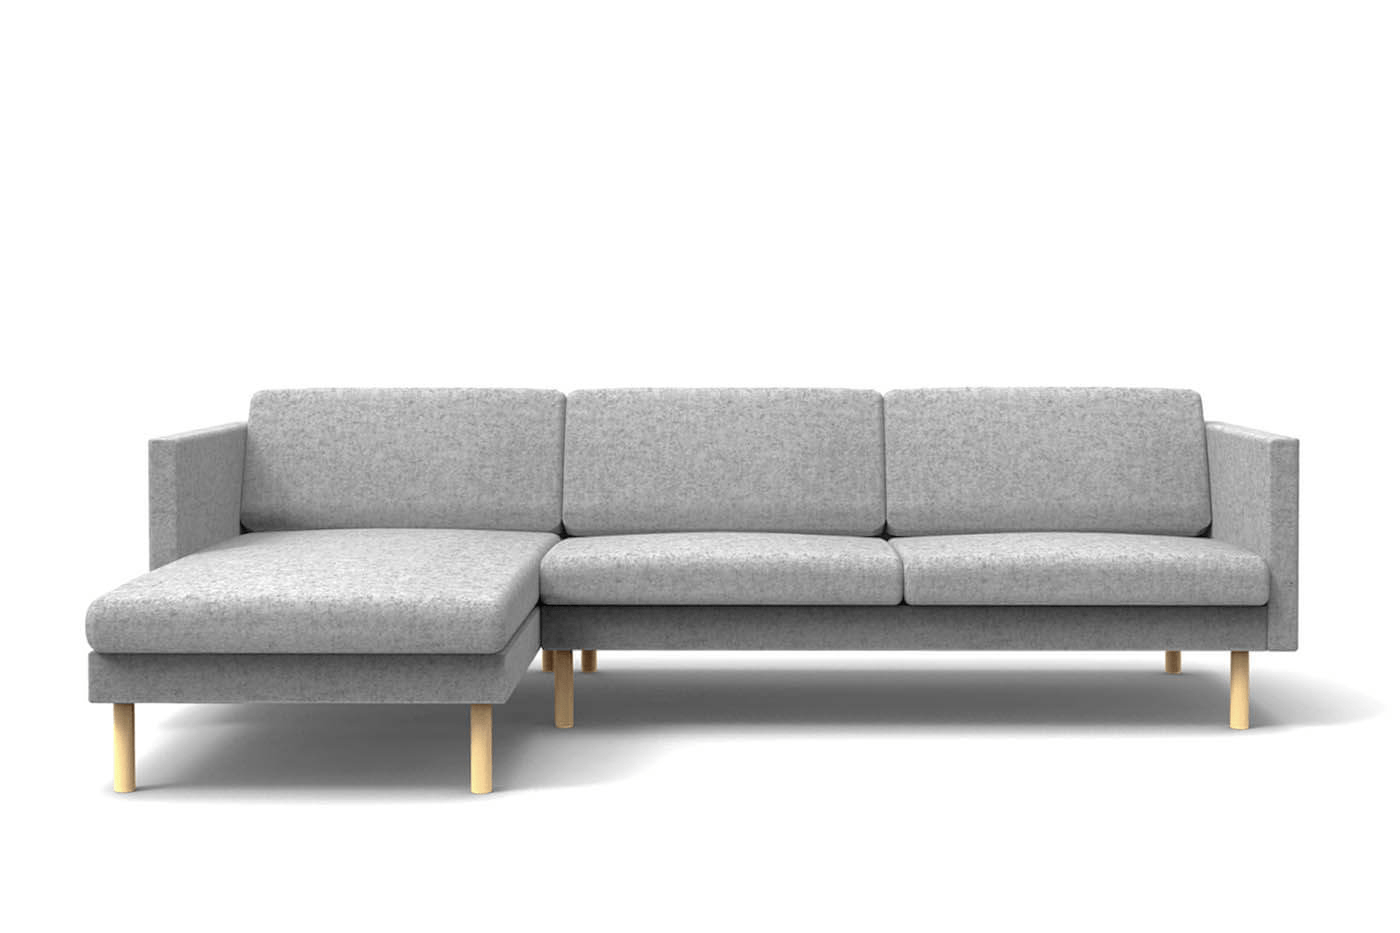 Sofa chaise lounge chaise lounges thesofa for Chaise longue furniture